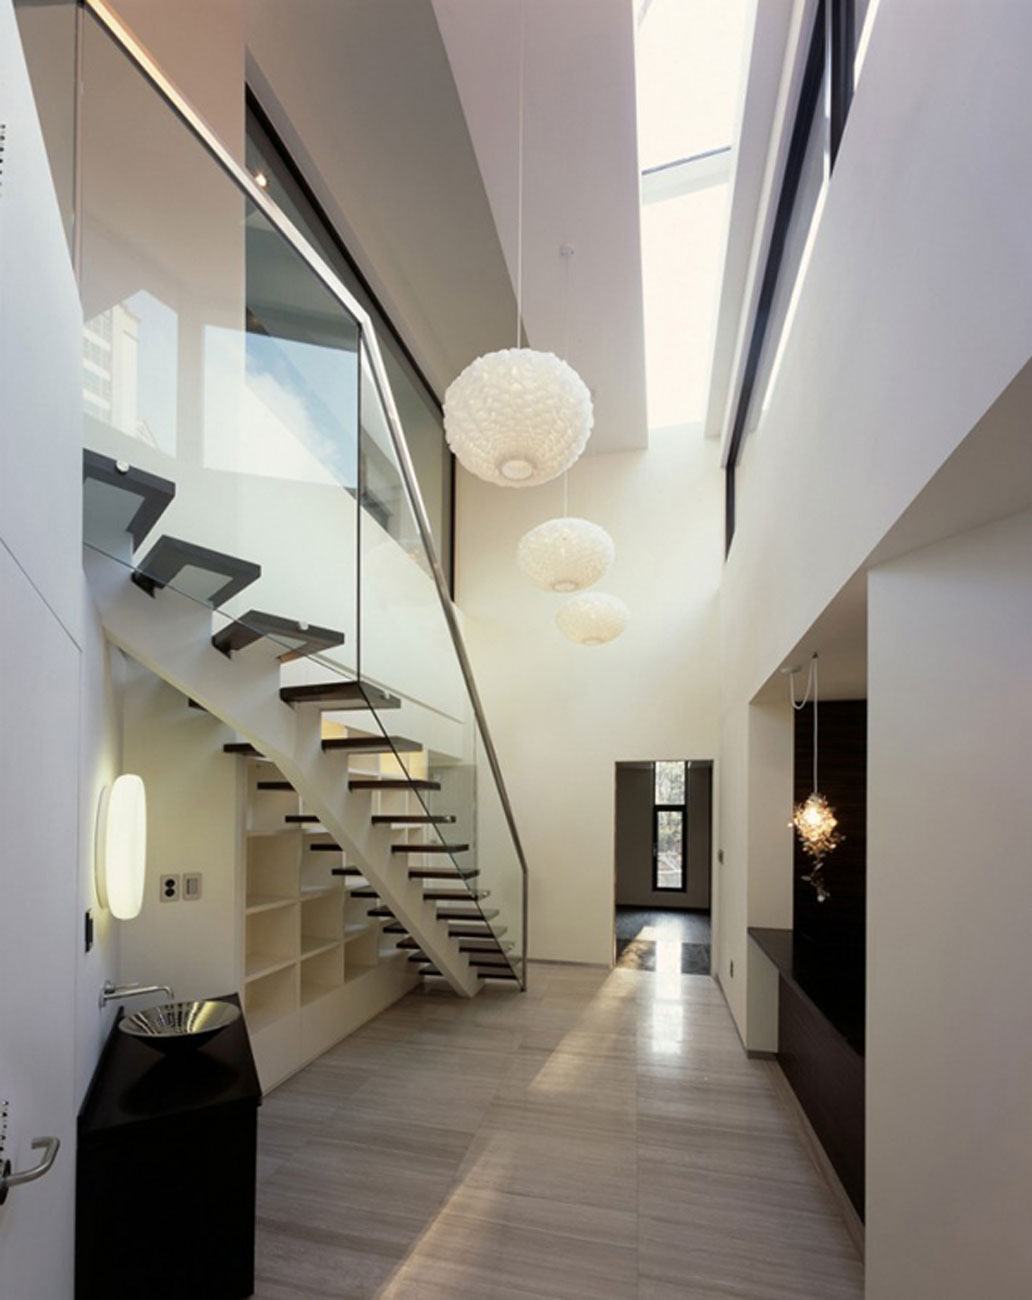 Z house stunning architecture of a modern house by korean architect ceiling lamps